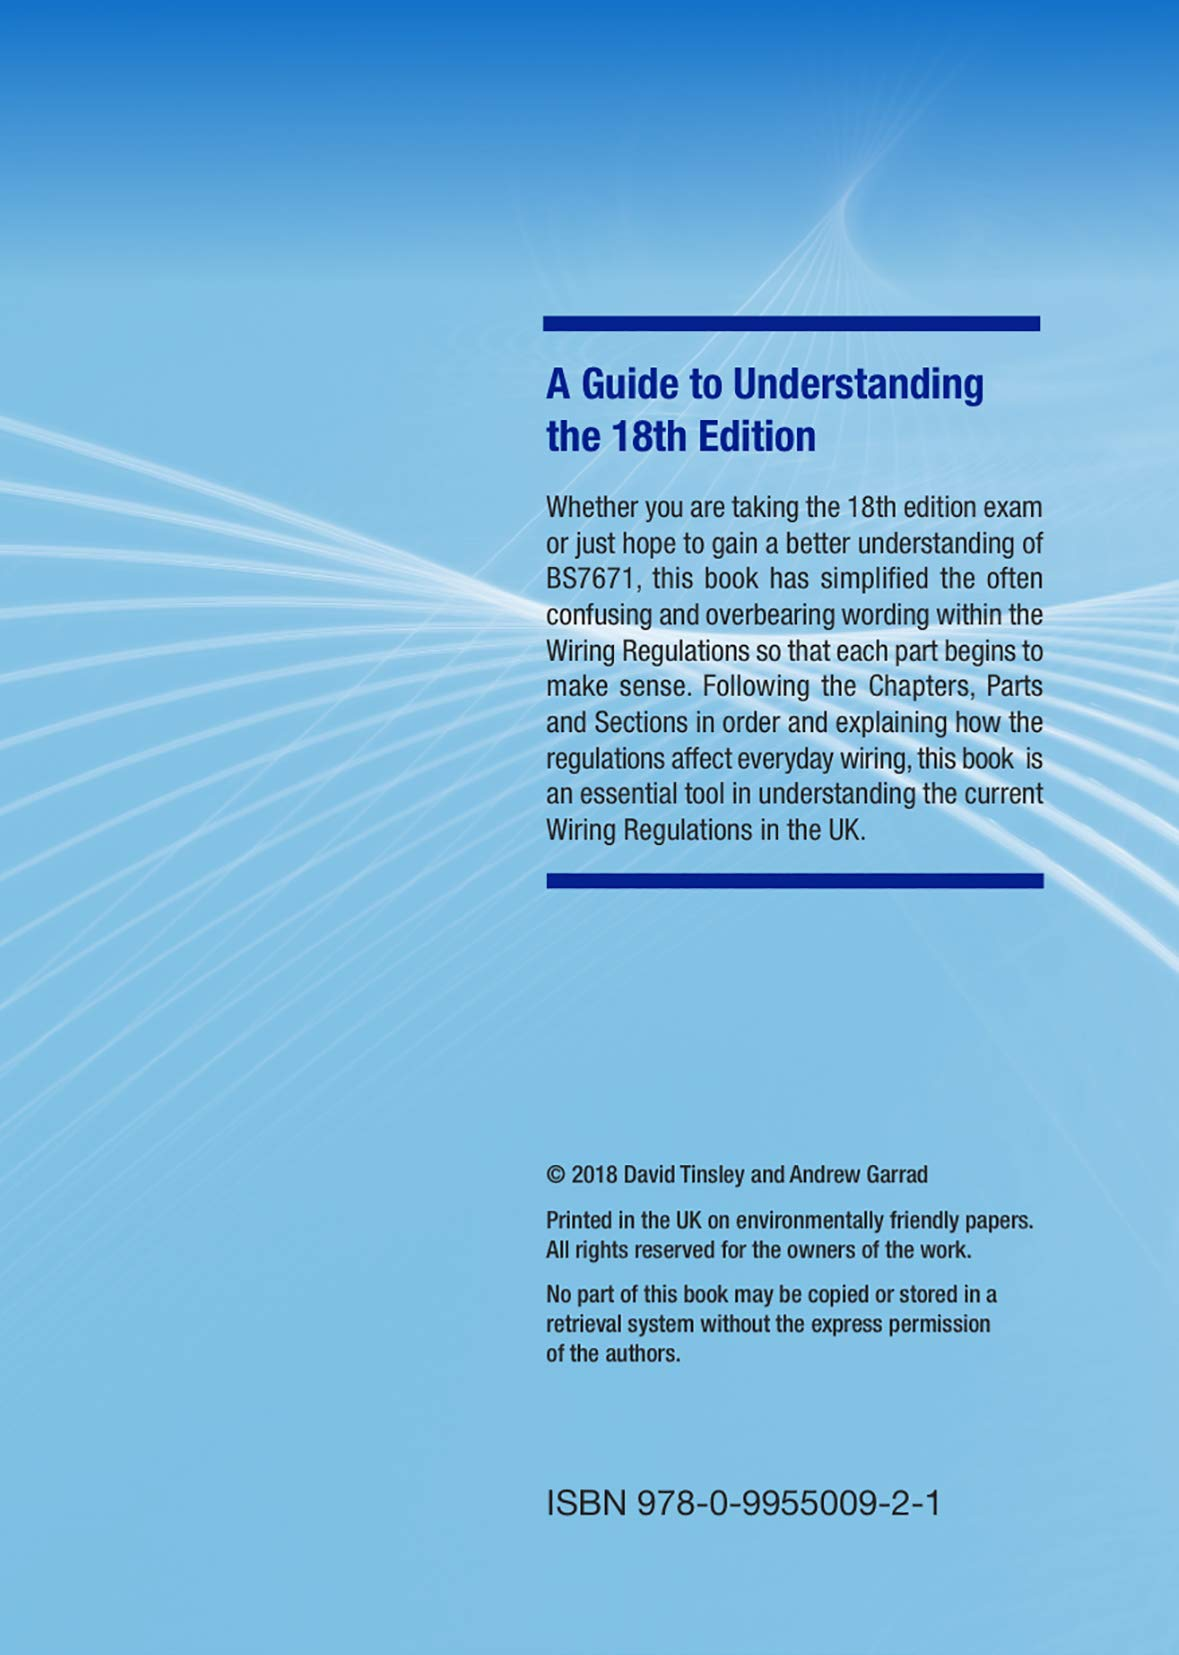 Astounding A Guide To Understanding The 18Th Edition Wiring Regulations Amazon Wiring Cloud Nuvitbieswglorg